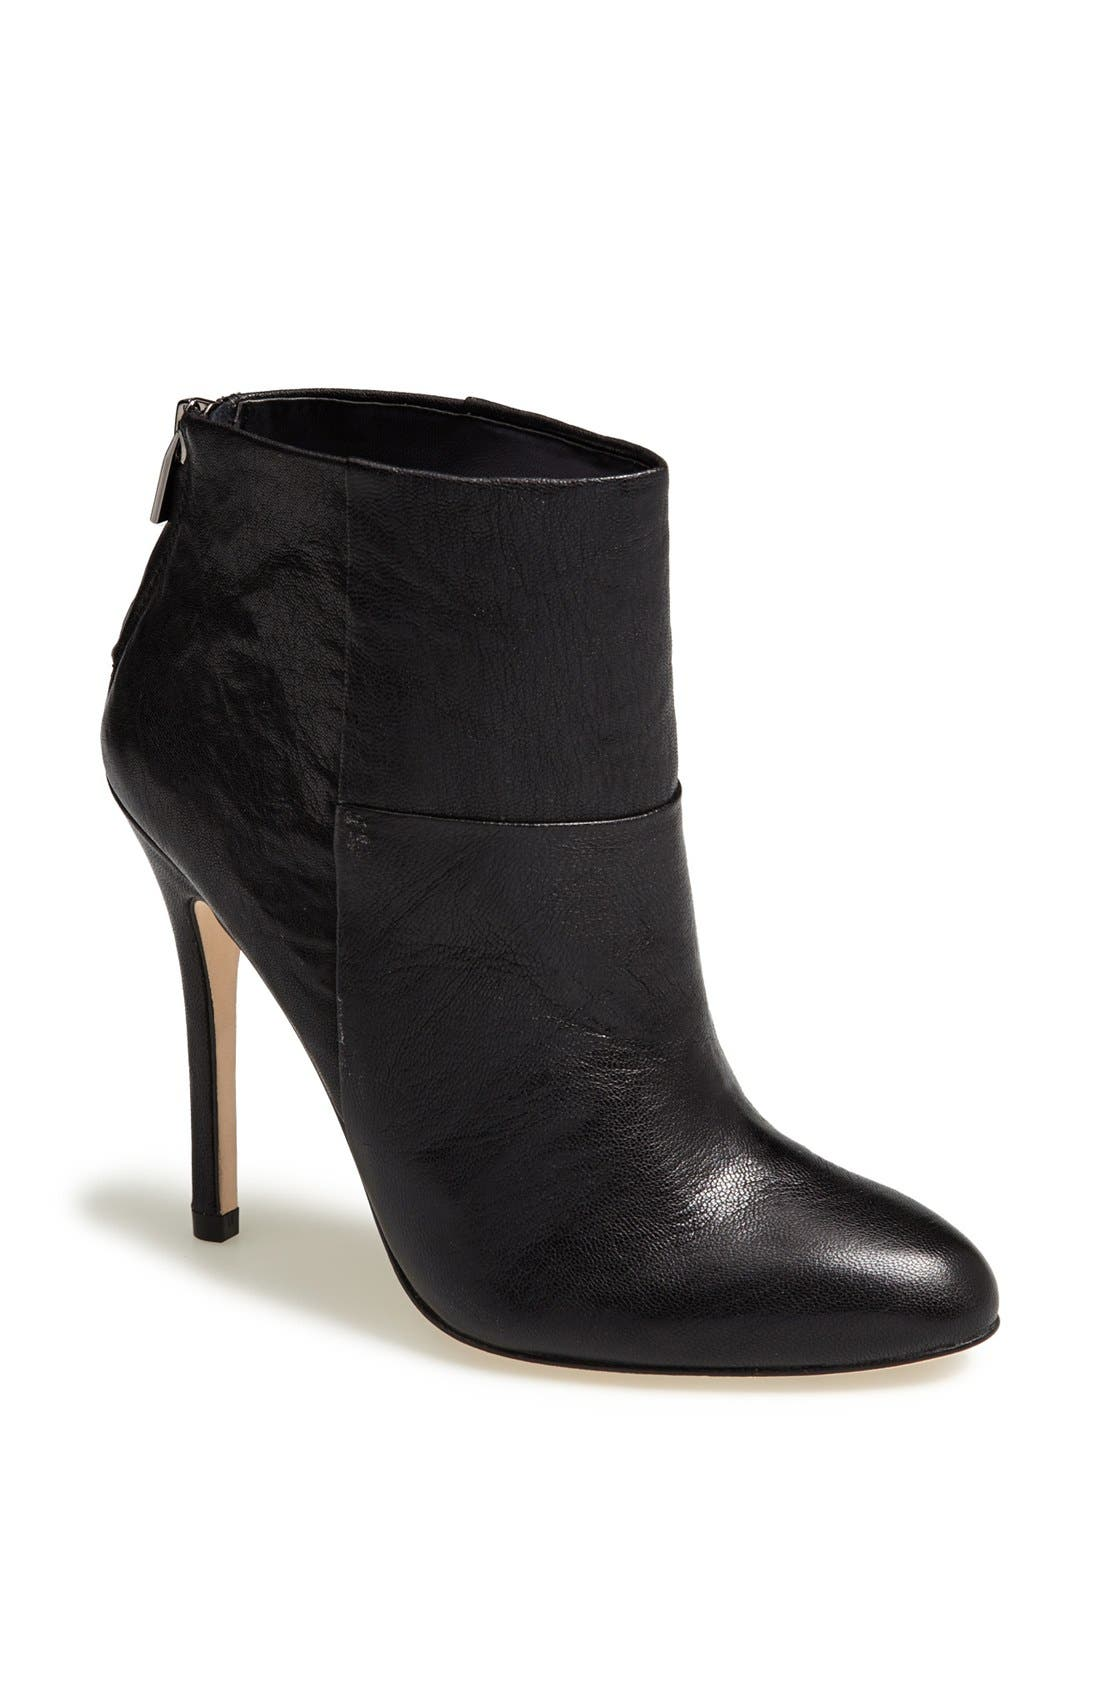 Alternate Image 1 Selected - Charles David 'Zen' Ankle Bootie